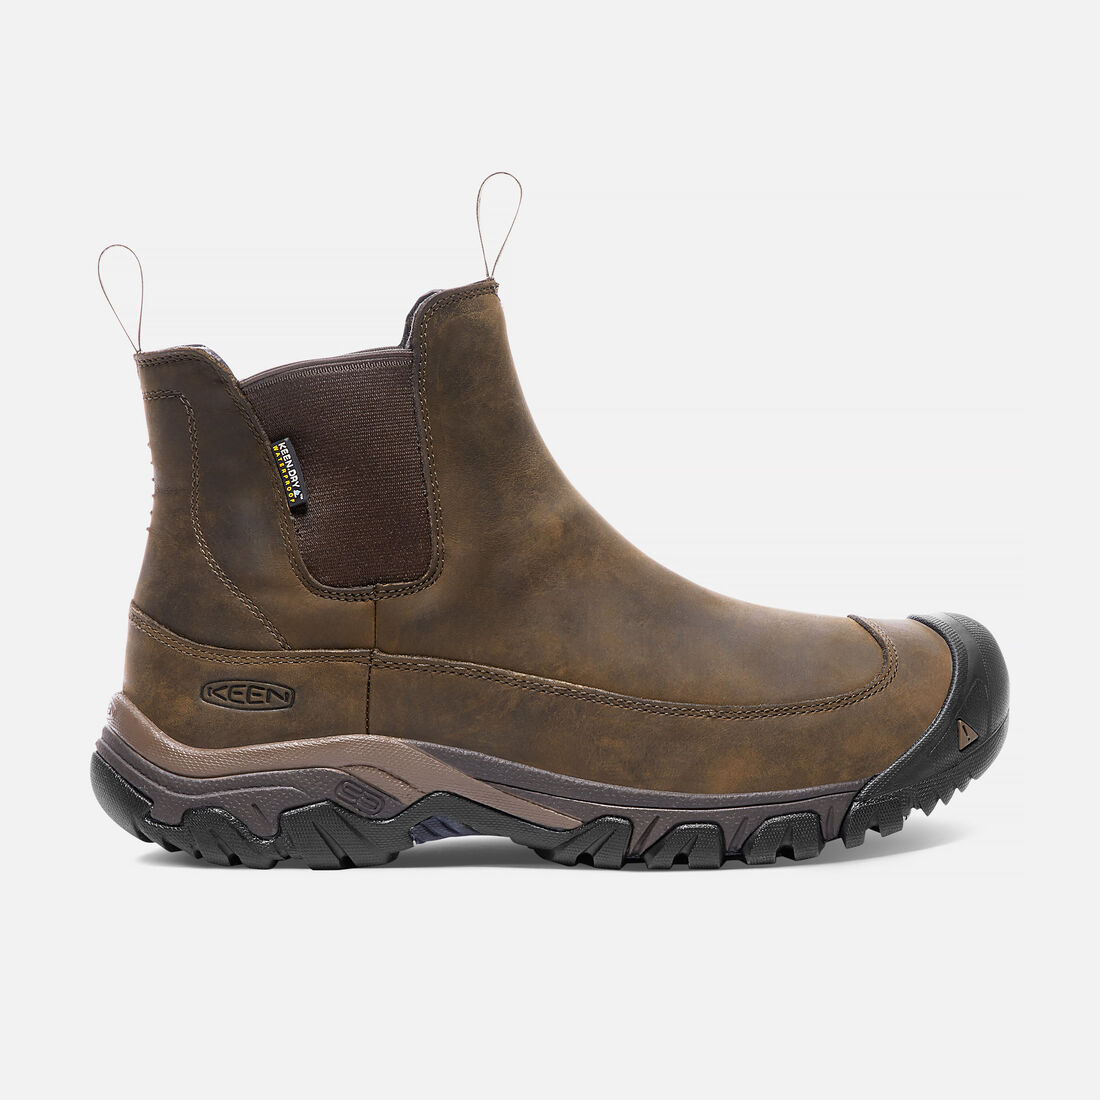 Men's ANCHORAGE III Waterproof Boot in Dark Earth/Mulch - large view.